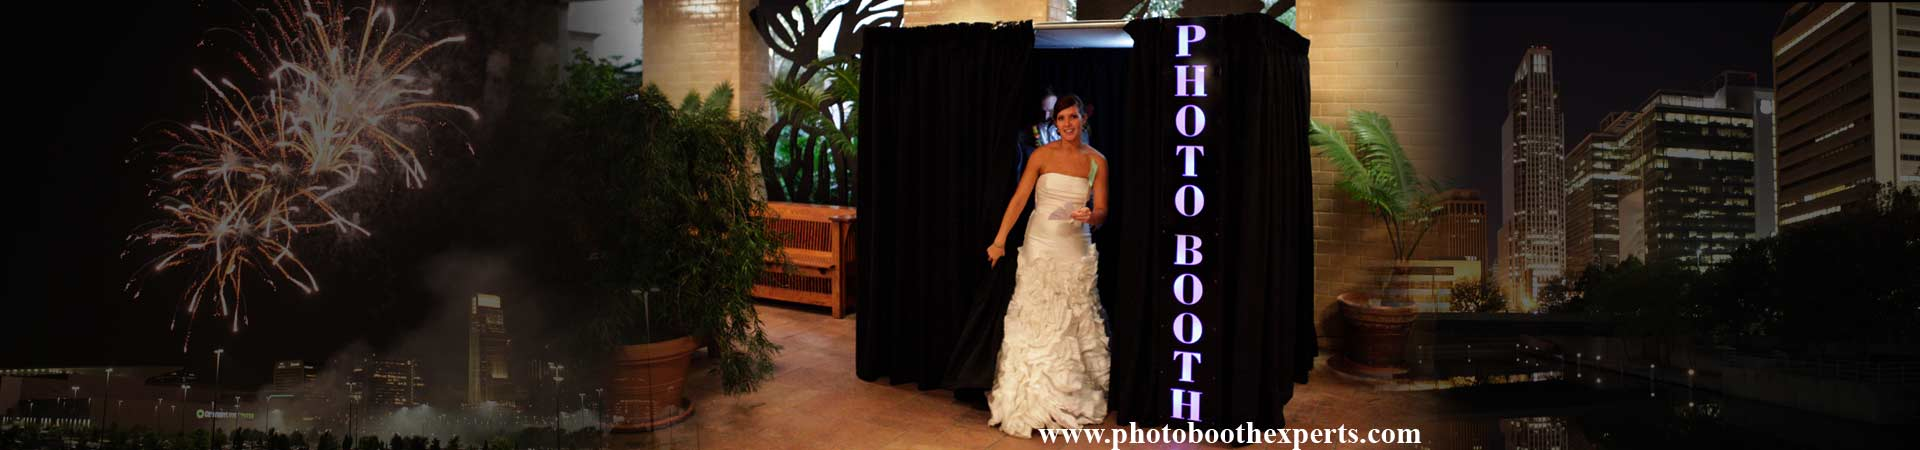 Luxury Photo Booth Rental Service in Omaha, Nebraska